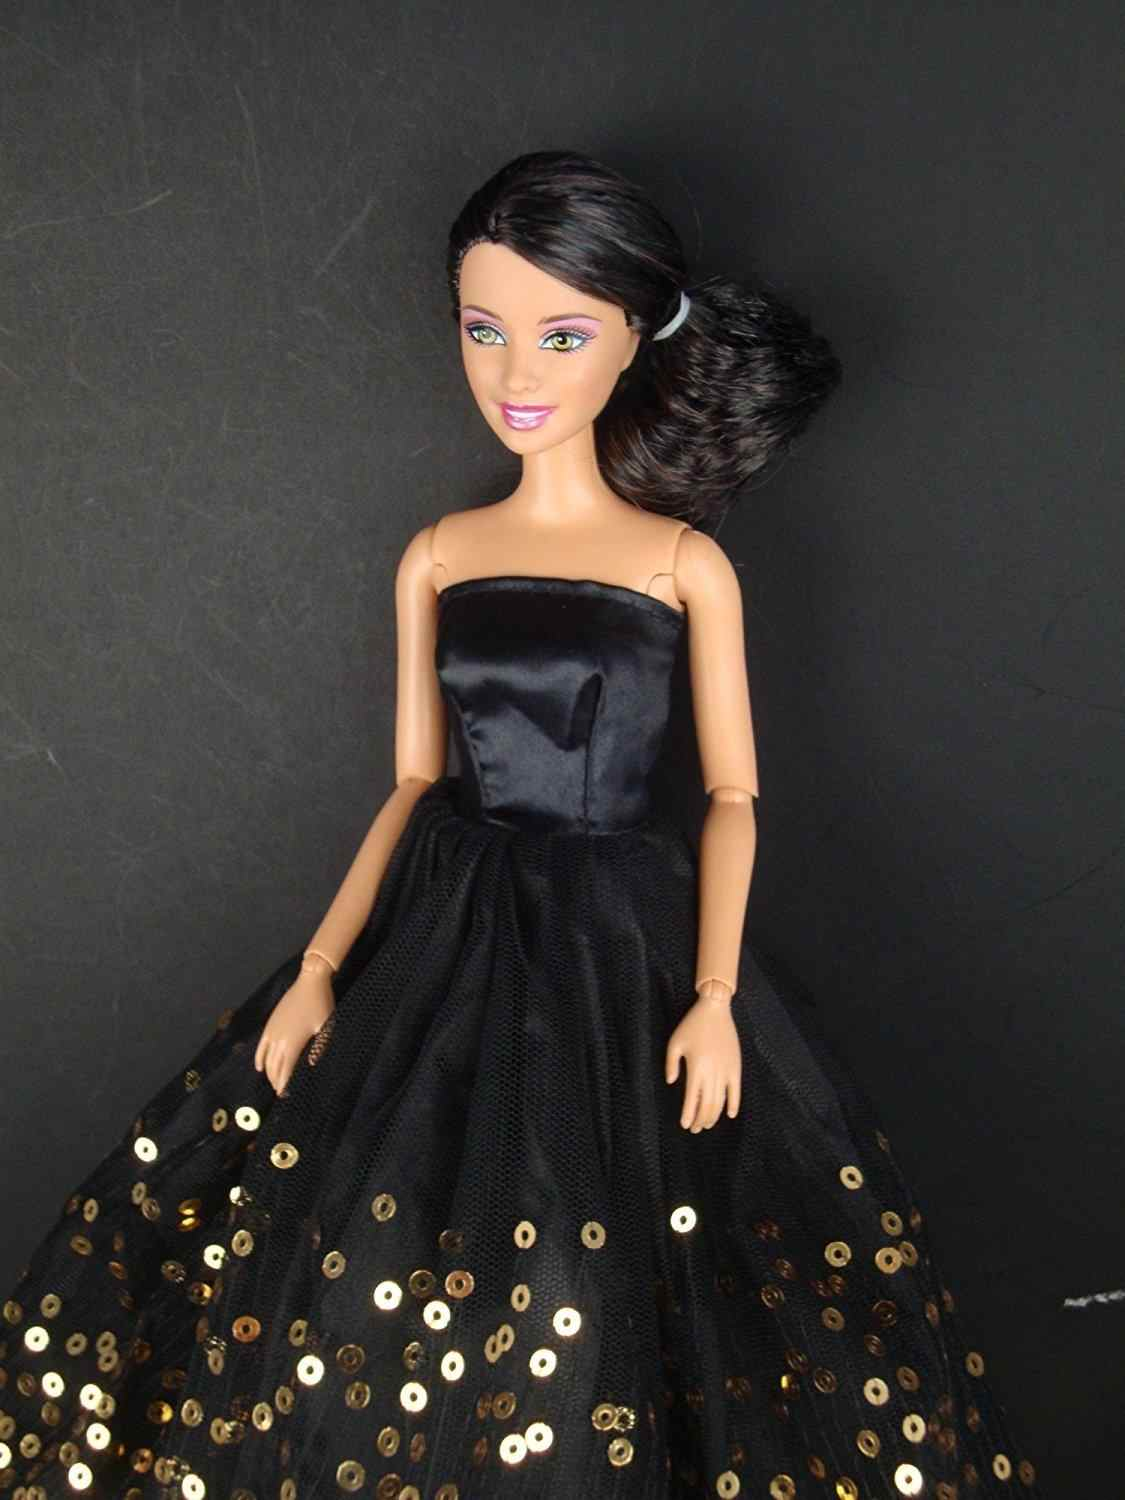 06abb2bf5276d LeadingStar Dress with Lots of Gold Sequins Made to Fit for Doll Great  Children Gift Birthday Dress for doll